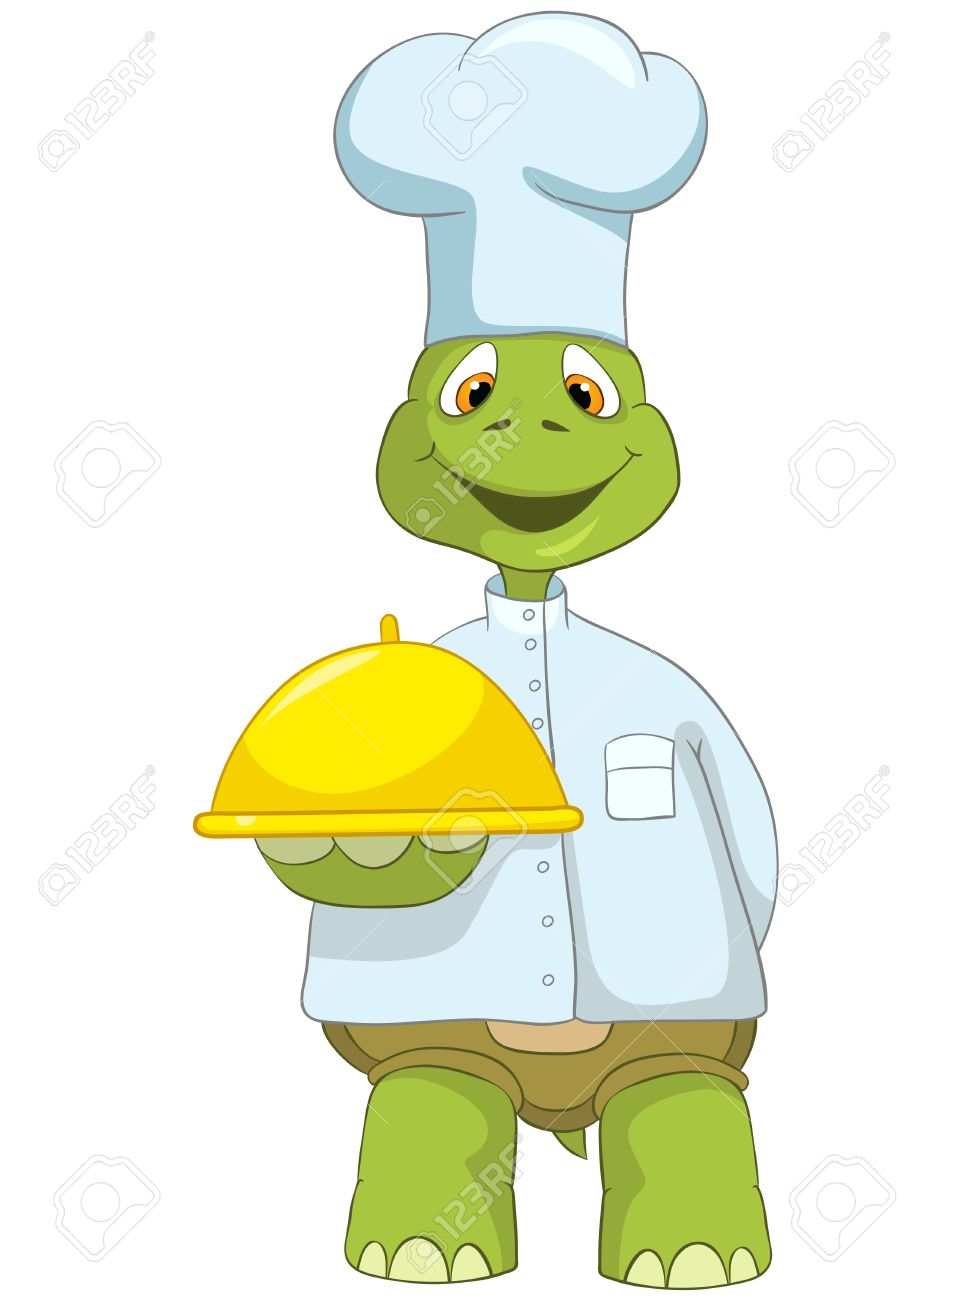 Cartoon Character Funny Turtle Isolated on White Background. Chef Stock Vector - 14455822